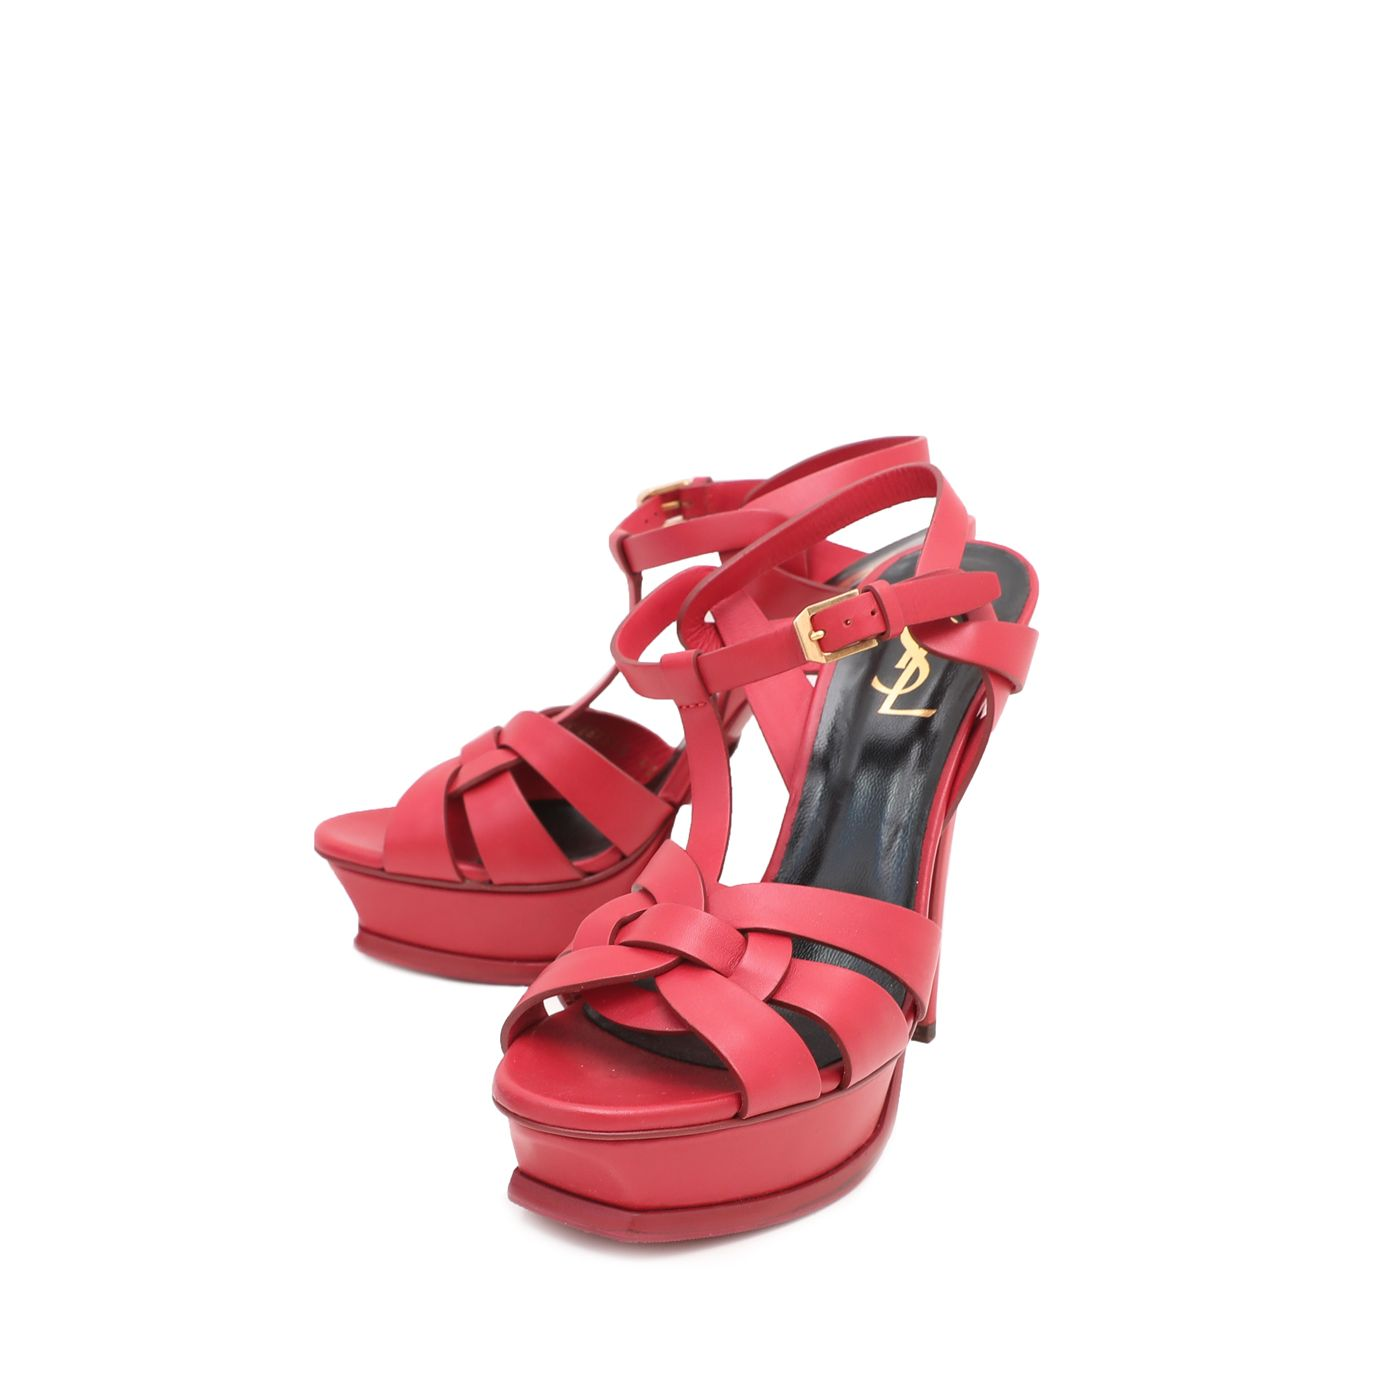 YSL Red Tribute Sandals 38